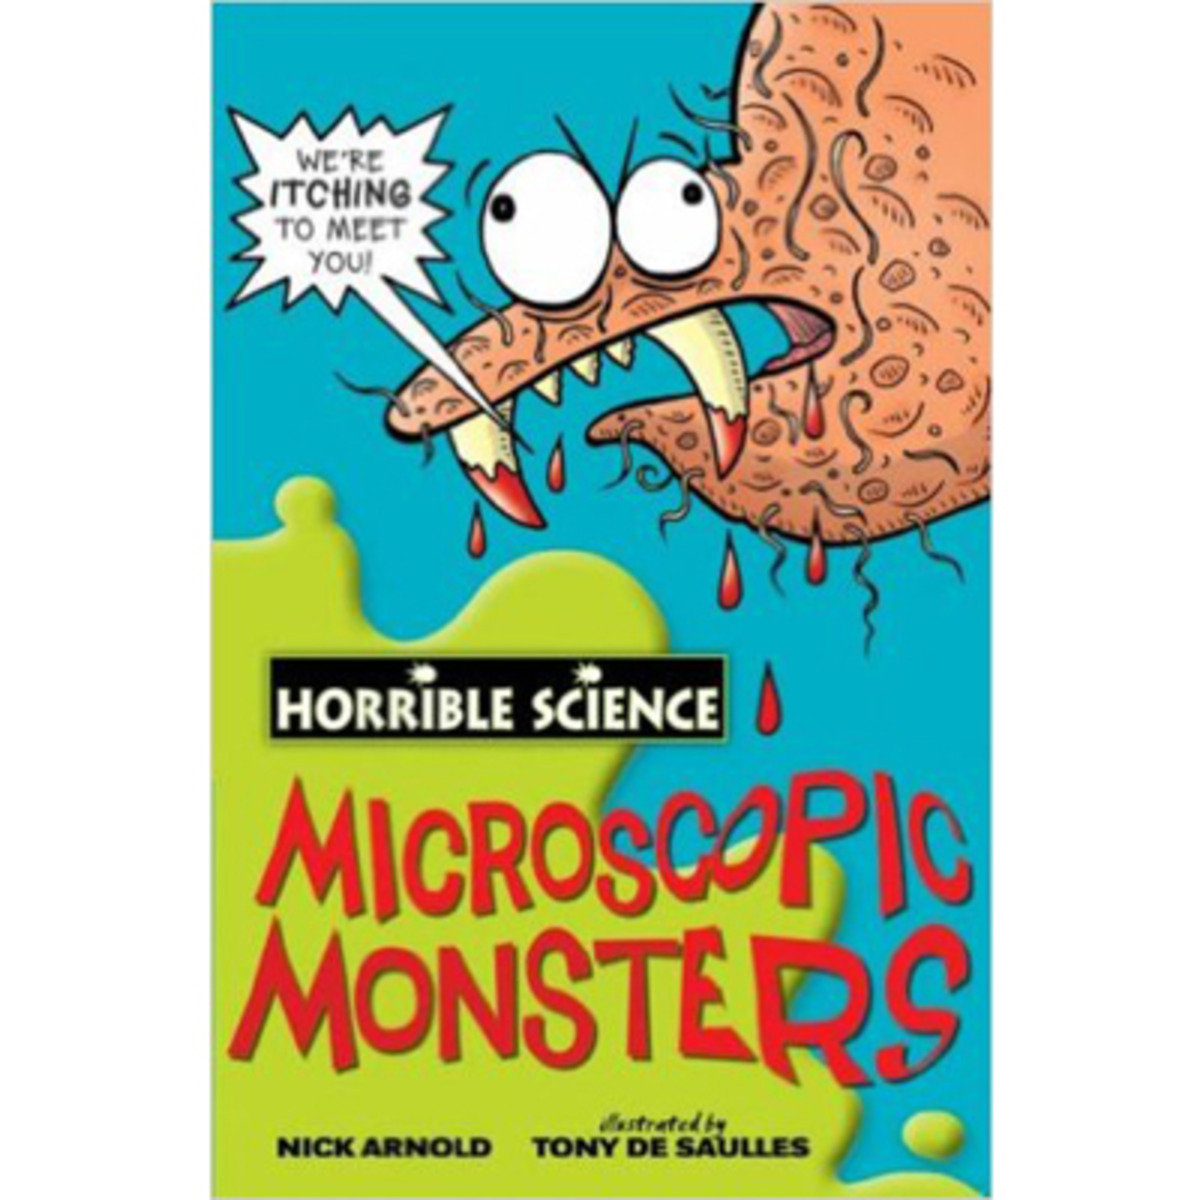 HORRIBLE SCIENCE: MICROSCOPIC MONSTERS 9781407106137